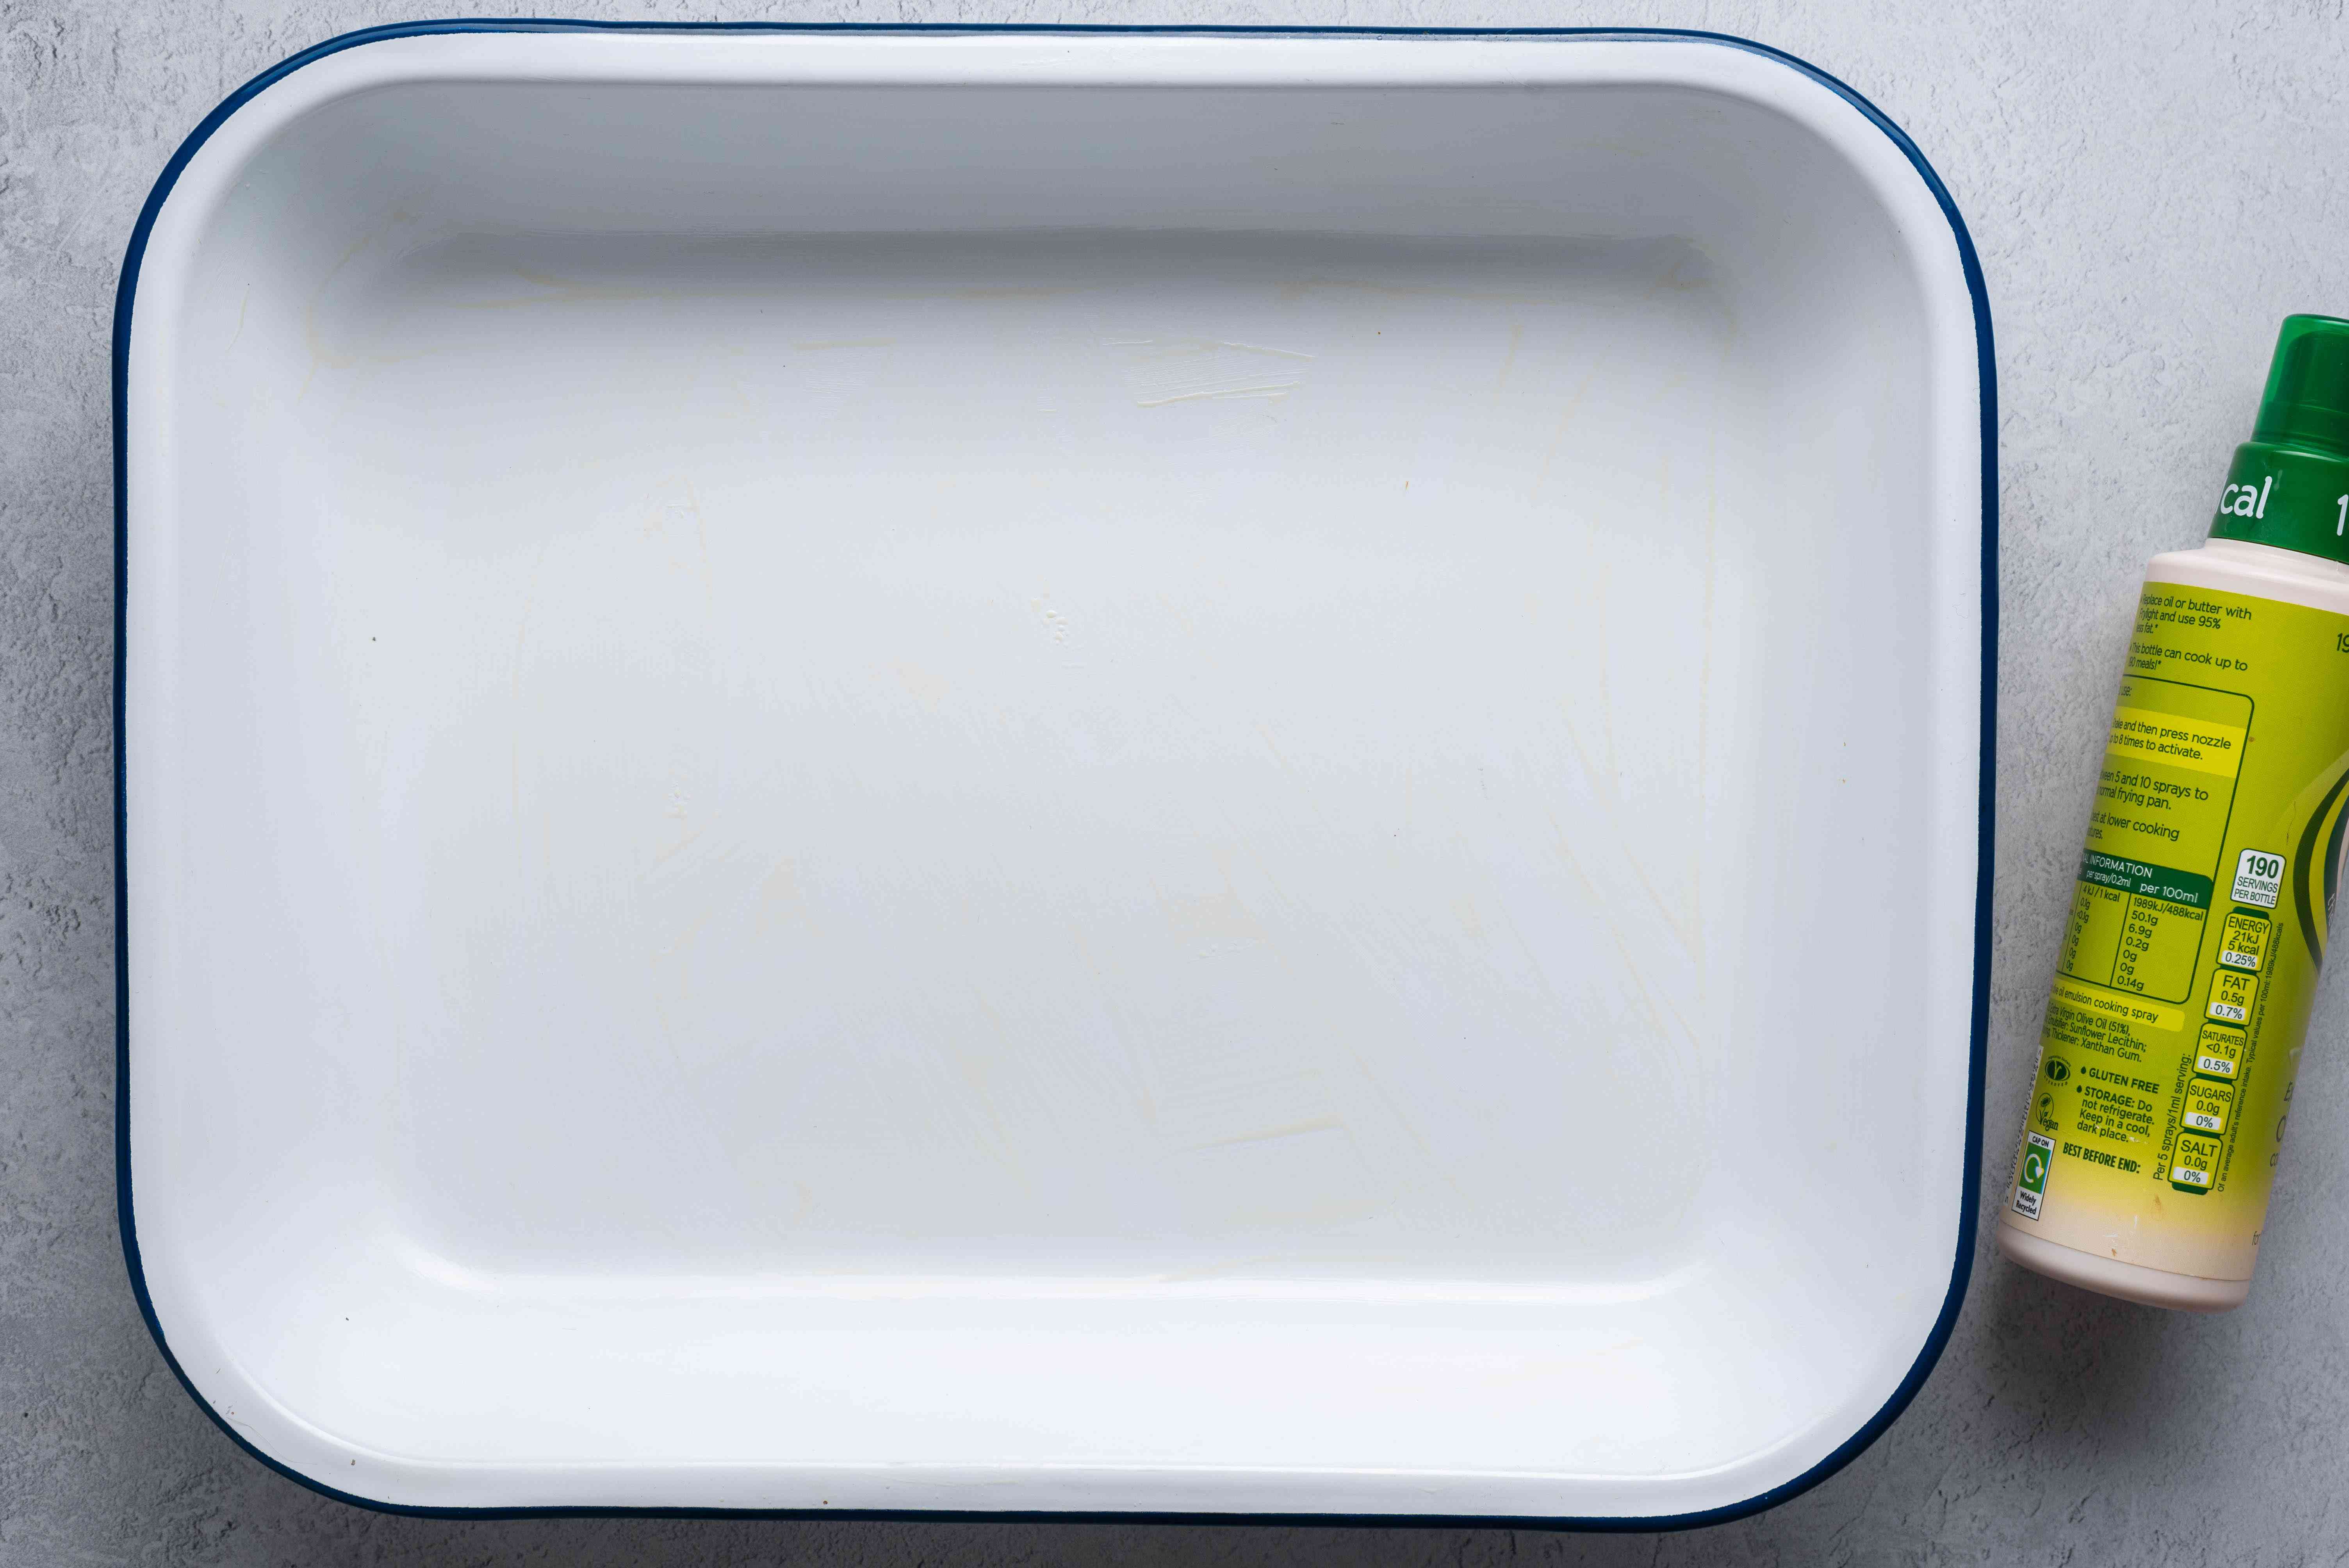 Coat a shallow baking dish with cooking spray